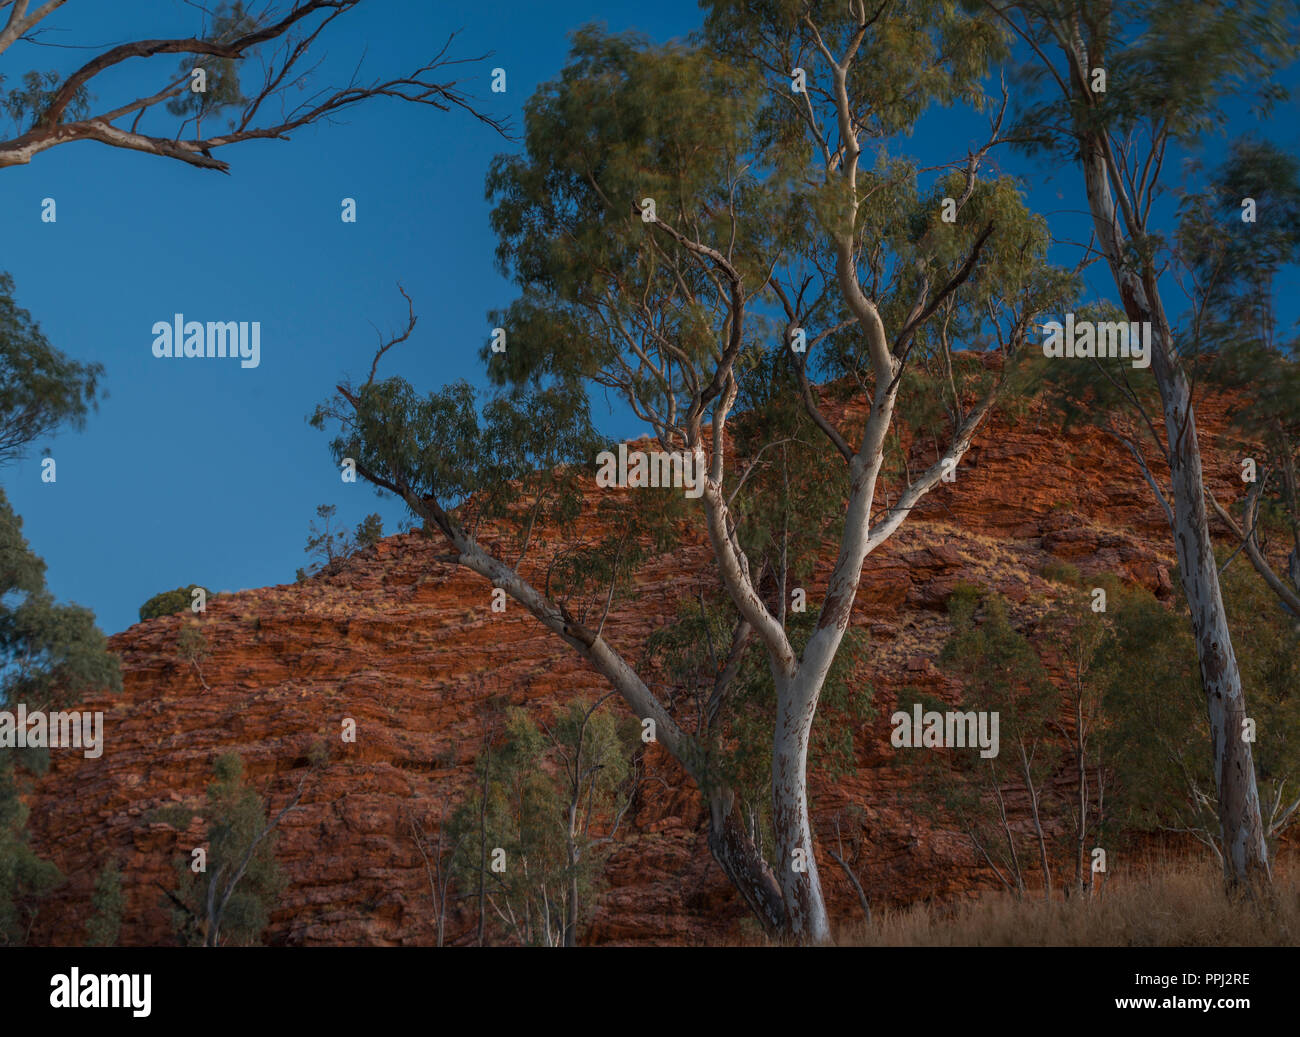 Gum trees in a river bank,  West Macdonnell Ranges, Alice Springs, NT, Australia - Stock Image